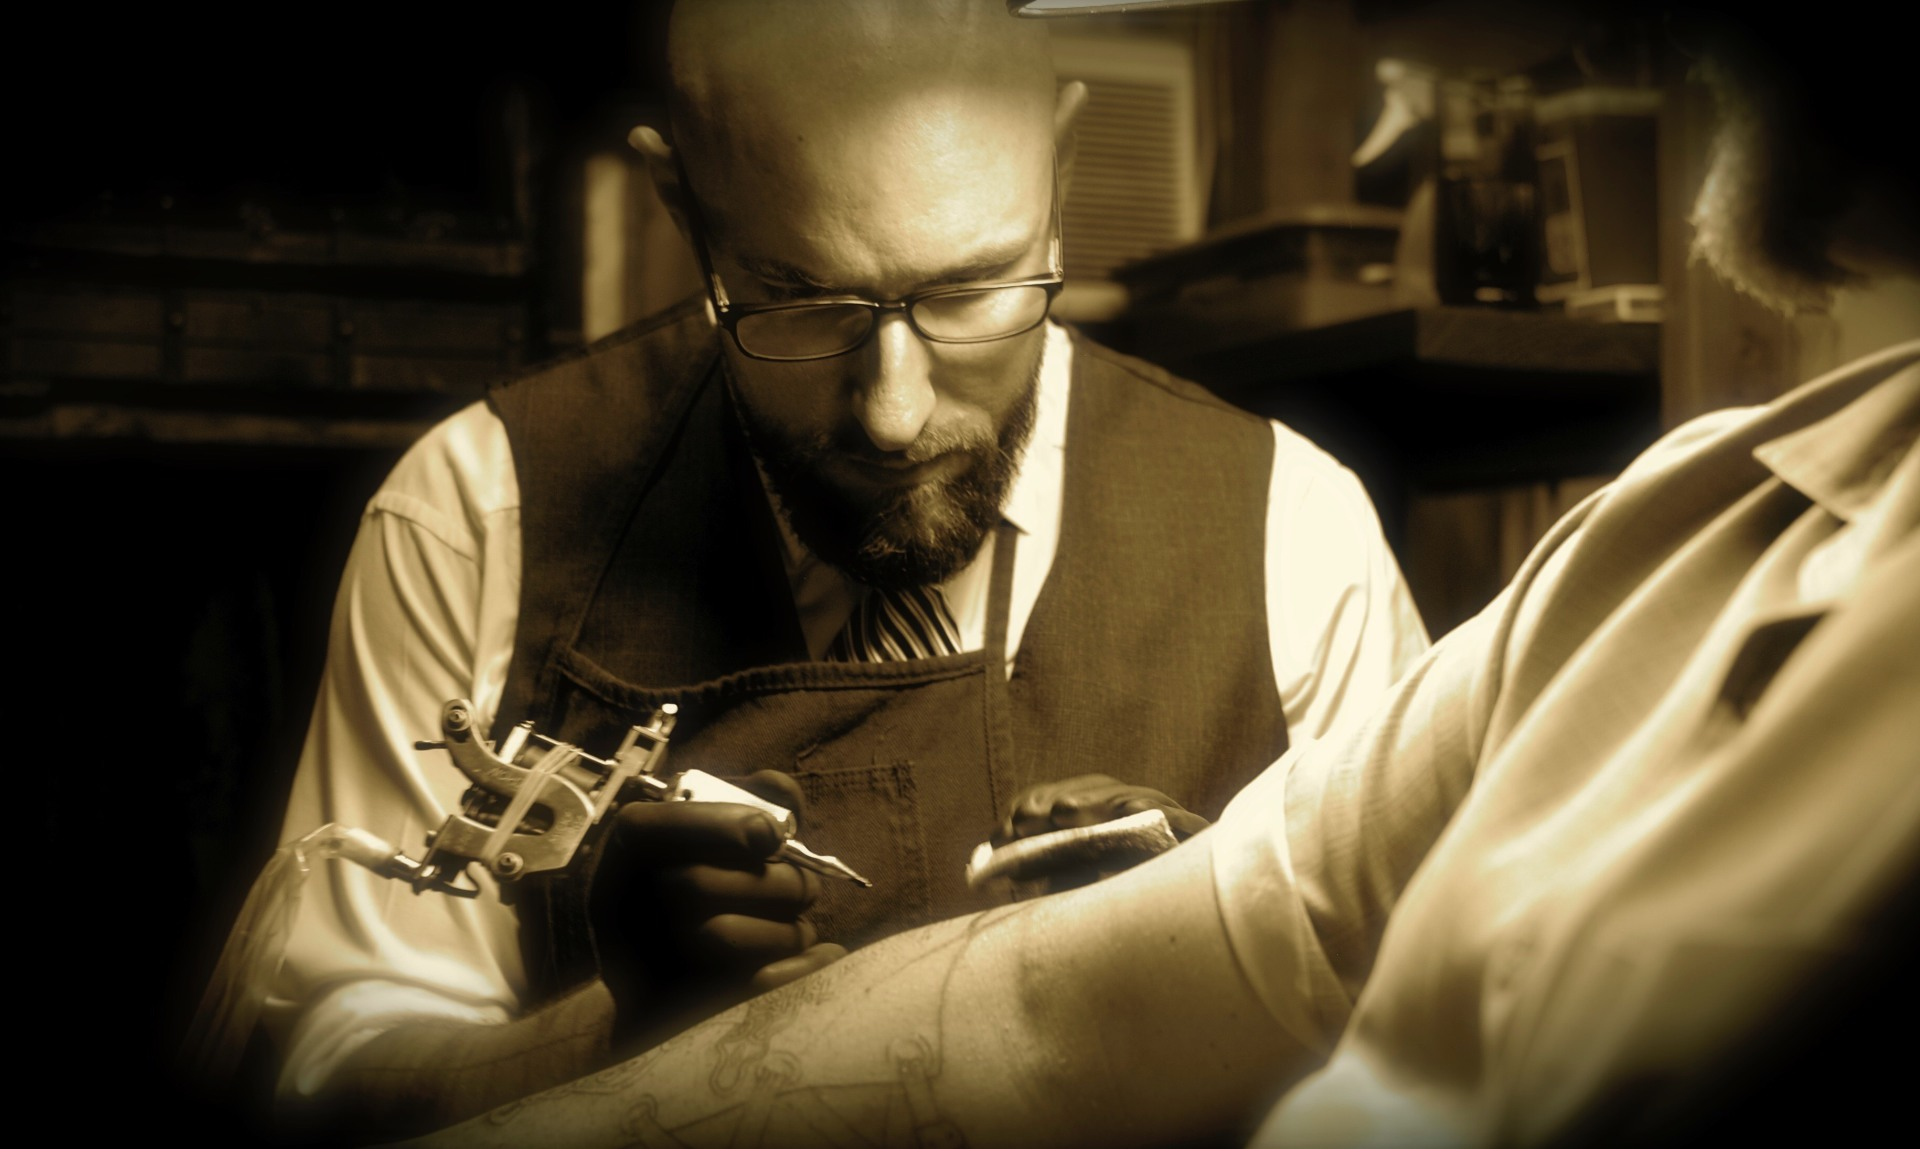 Interviews with Storystars: Scott Glazier of Speakeasy Tattoo